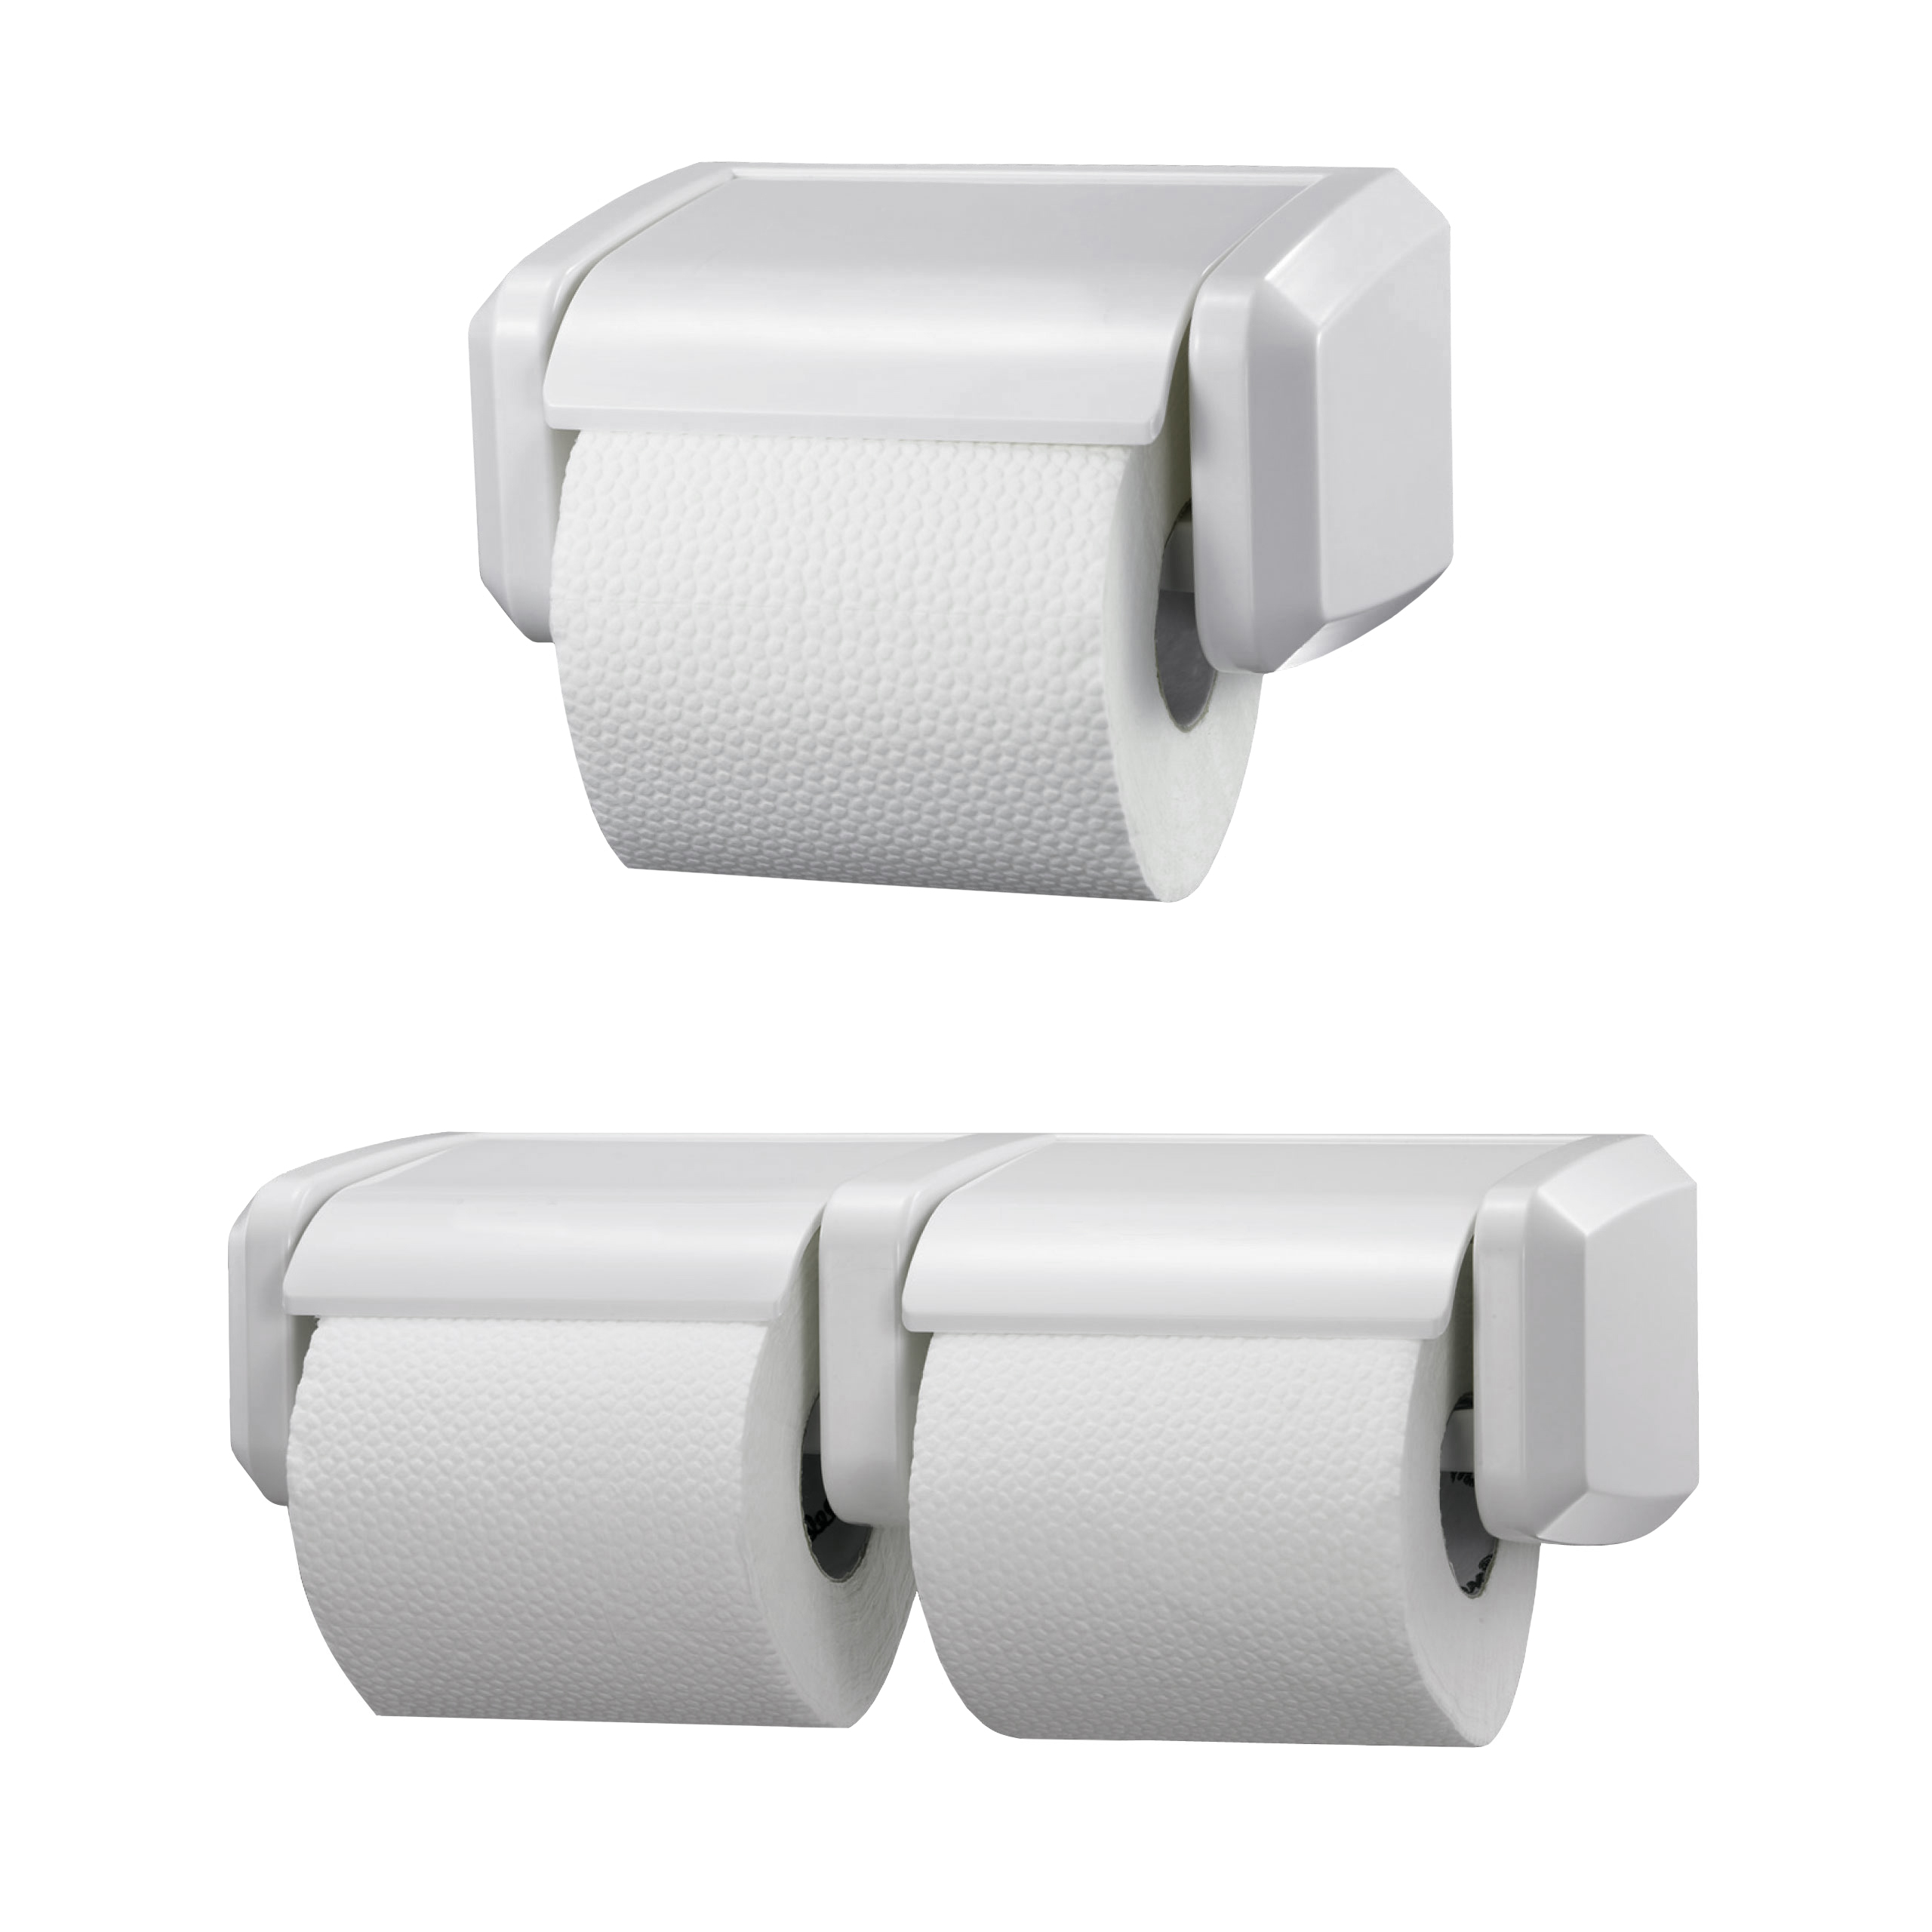 Plastic Toilet Roll Holder Heavy Duty Single Toilet Roll Holder Abs Plastic White